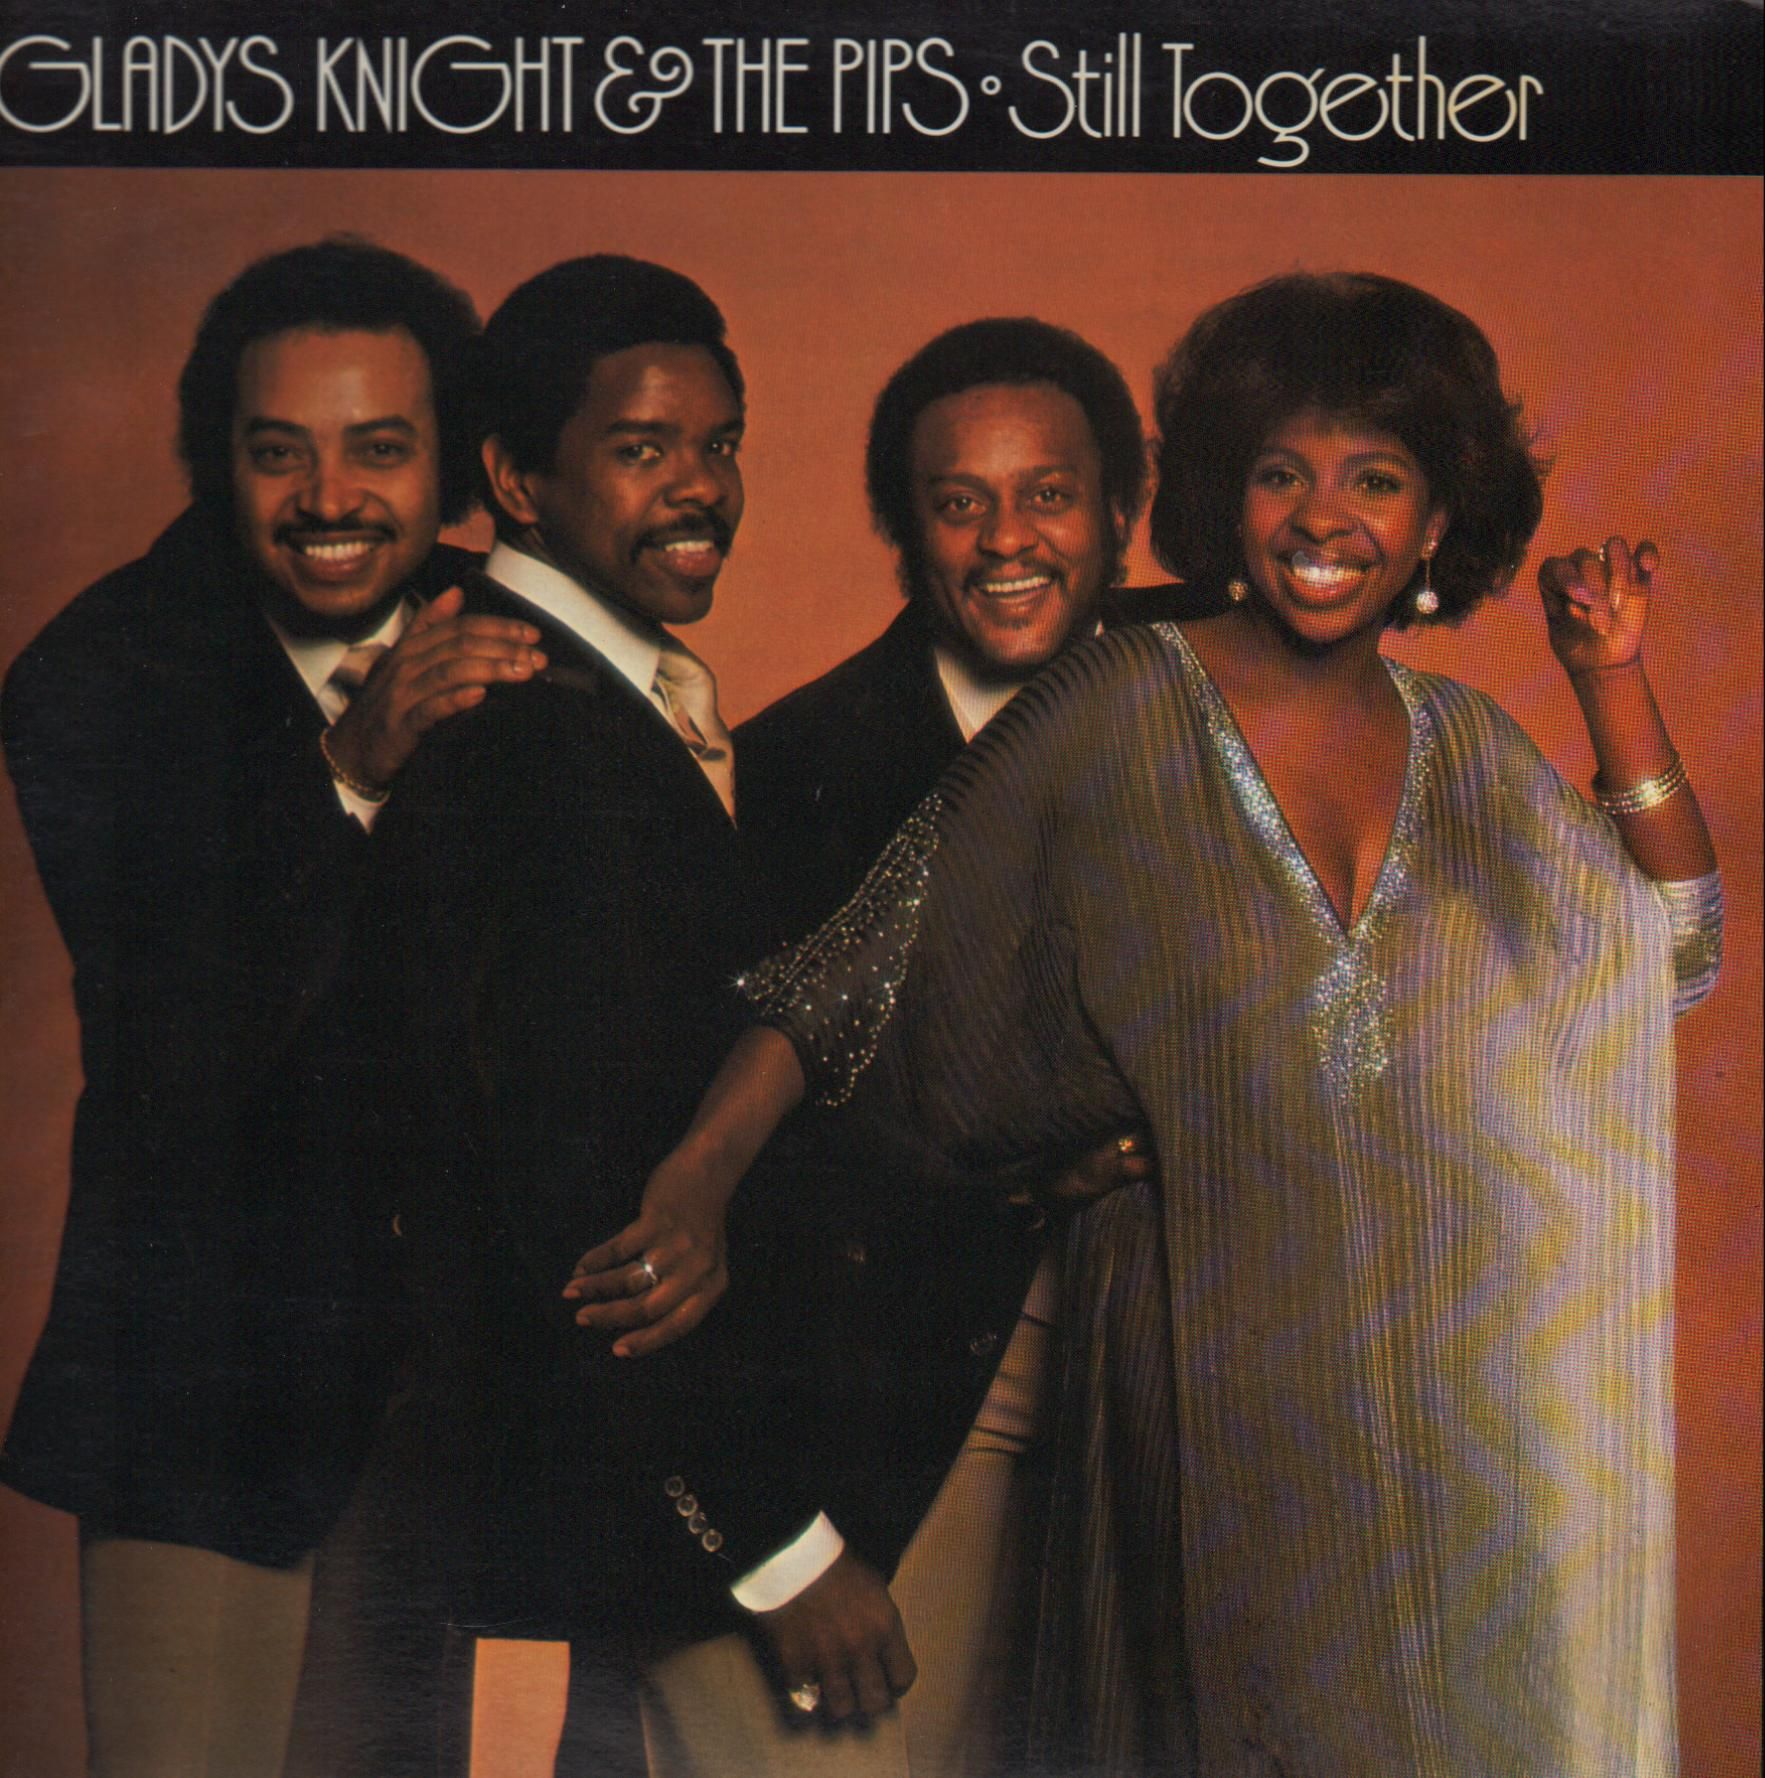 Gladys knght and the pips still together is the funky